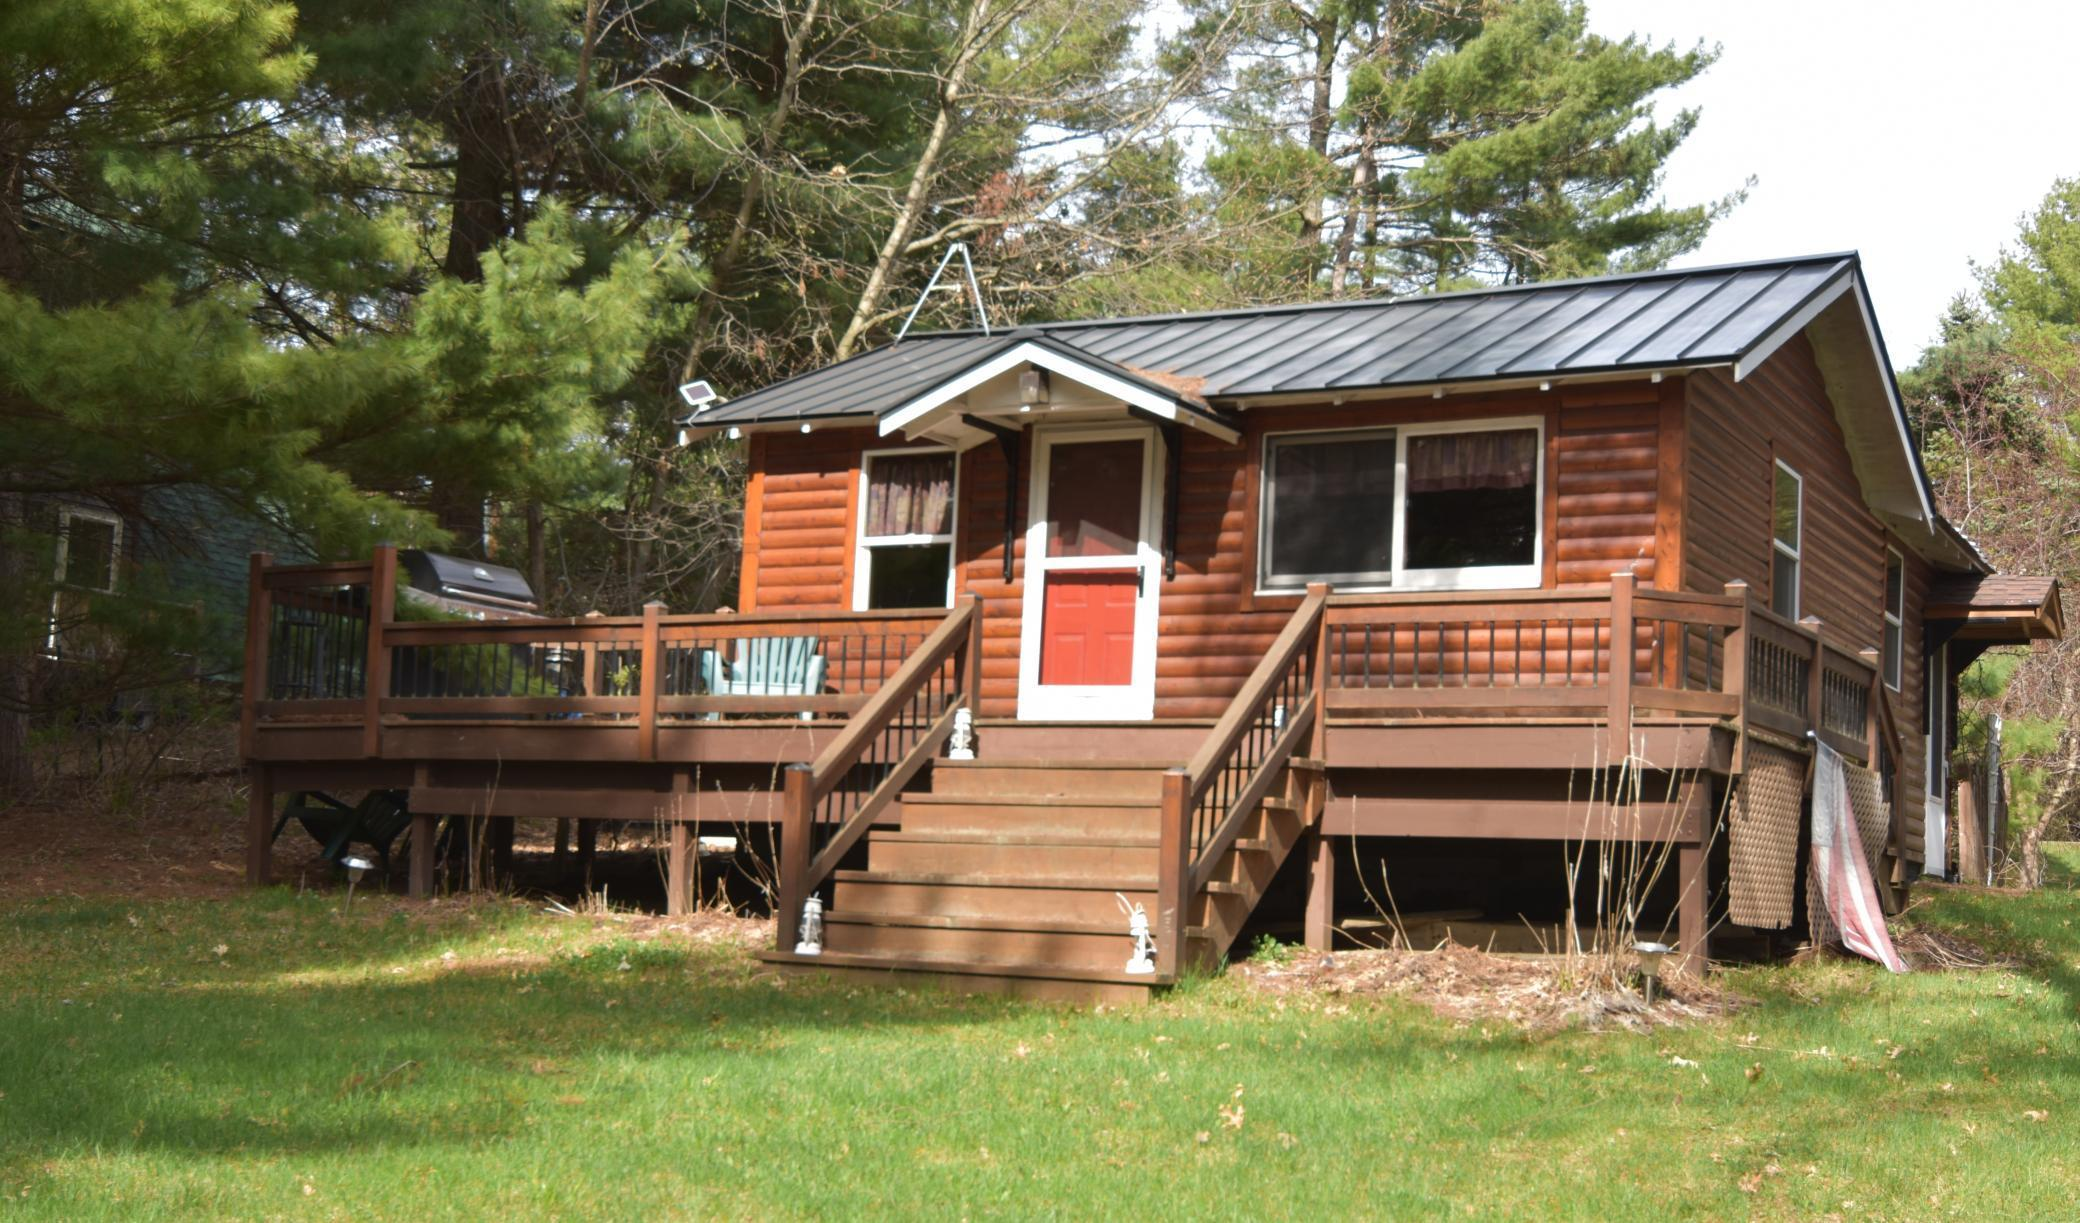 1368 21 3/4 Street Property Photo - Stanley Twp, WI real estate listing